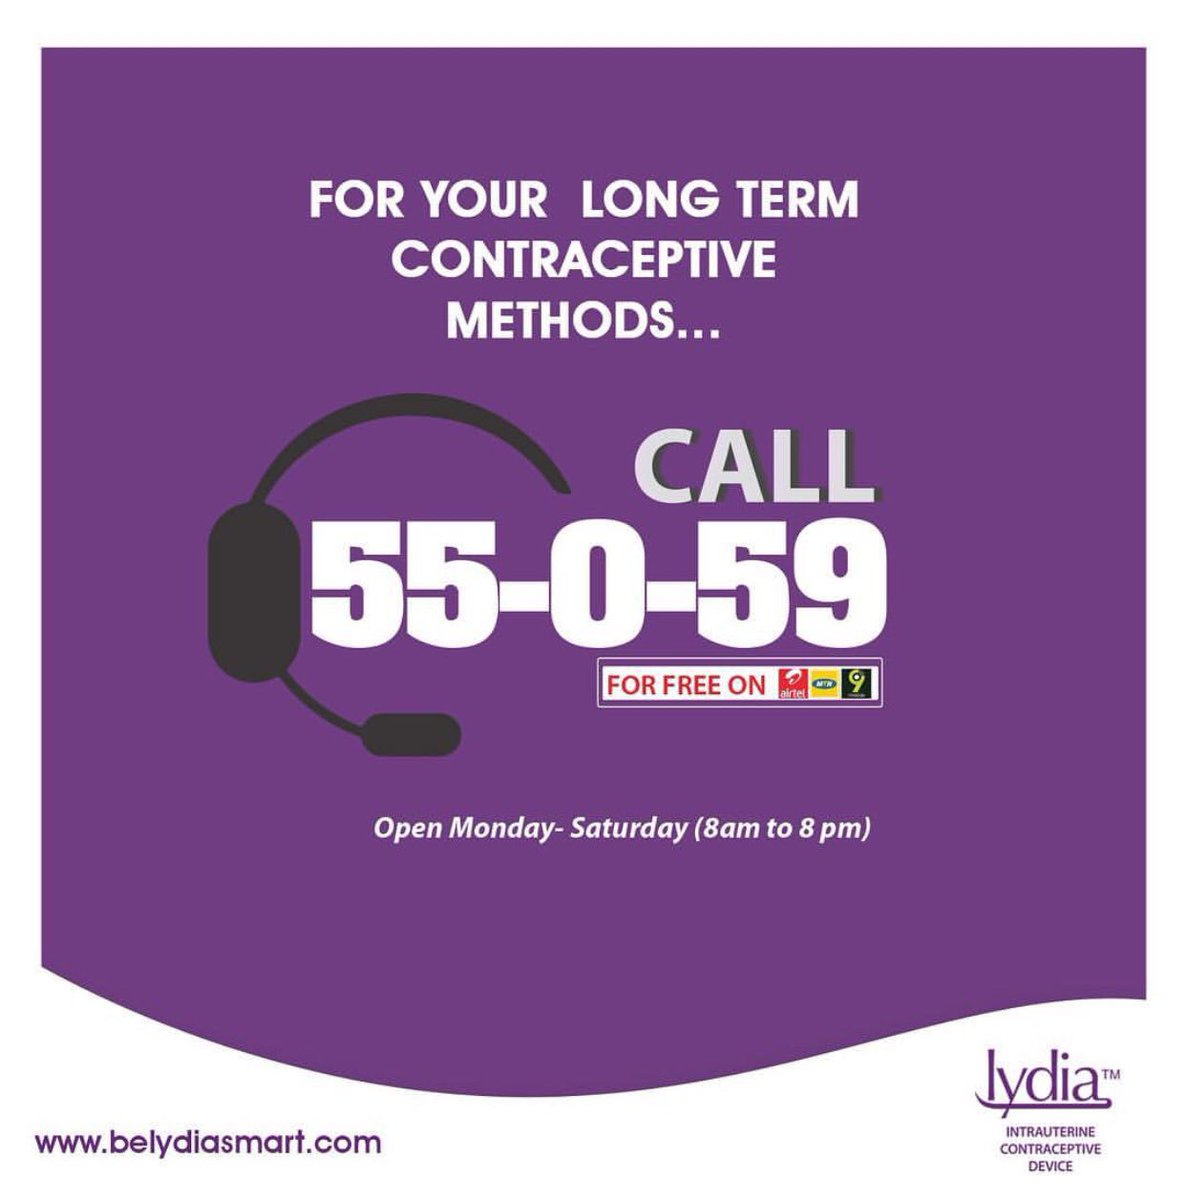 Call 55059 for your long term contraceptive methods. Tag your friends to see this. #belydiasmart #tagafriend <br>http://pic.twitter.com/lIYxkVJjvM